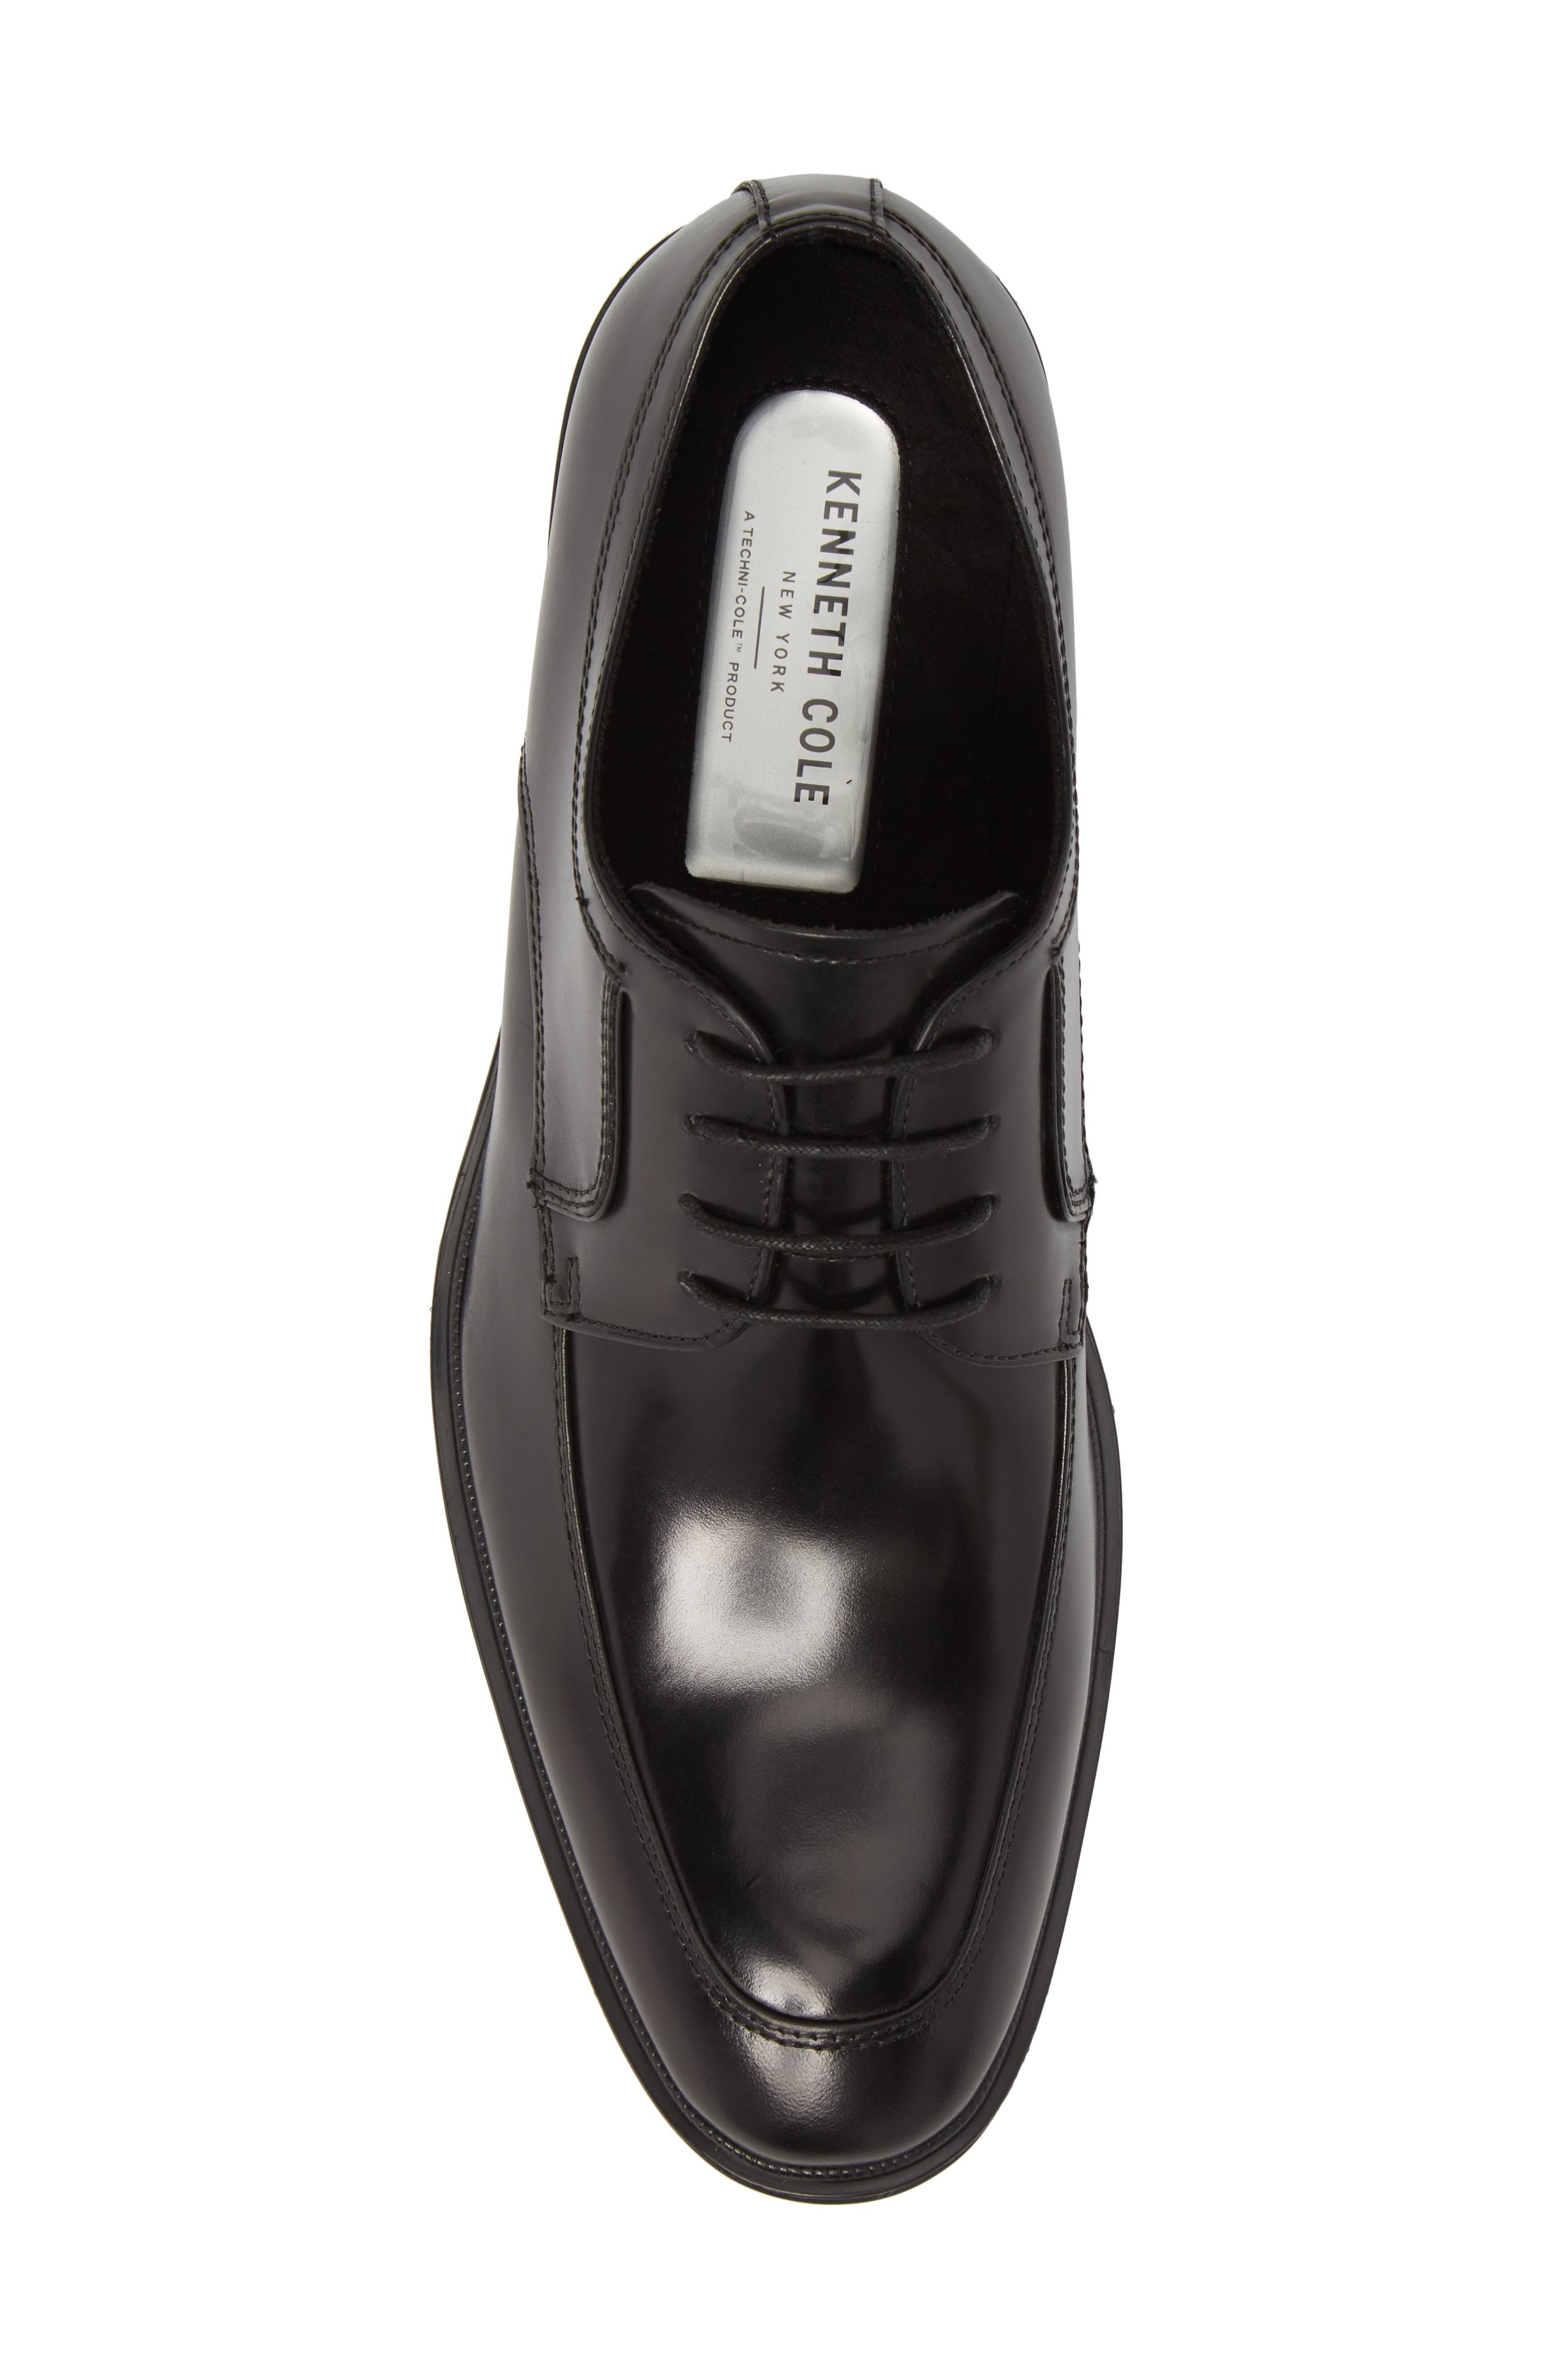 KENNETH COLE NEW YORK, Tully Apron Toe Derby, Alternate thumbnail 5, color, BLACK LEATHER